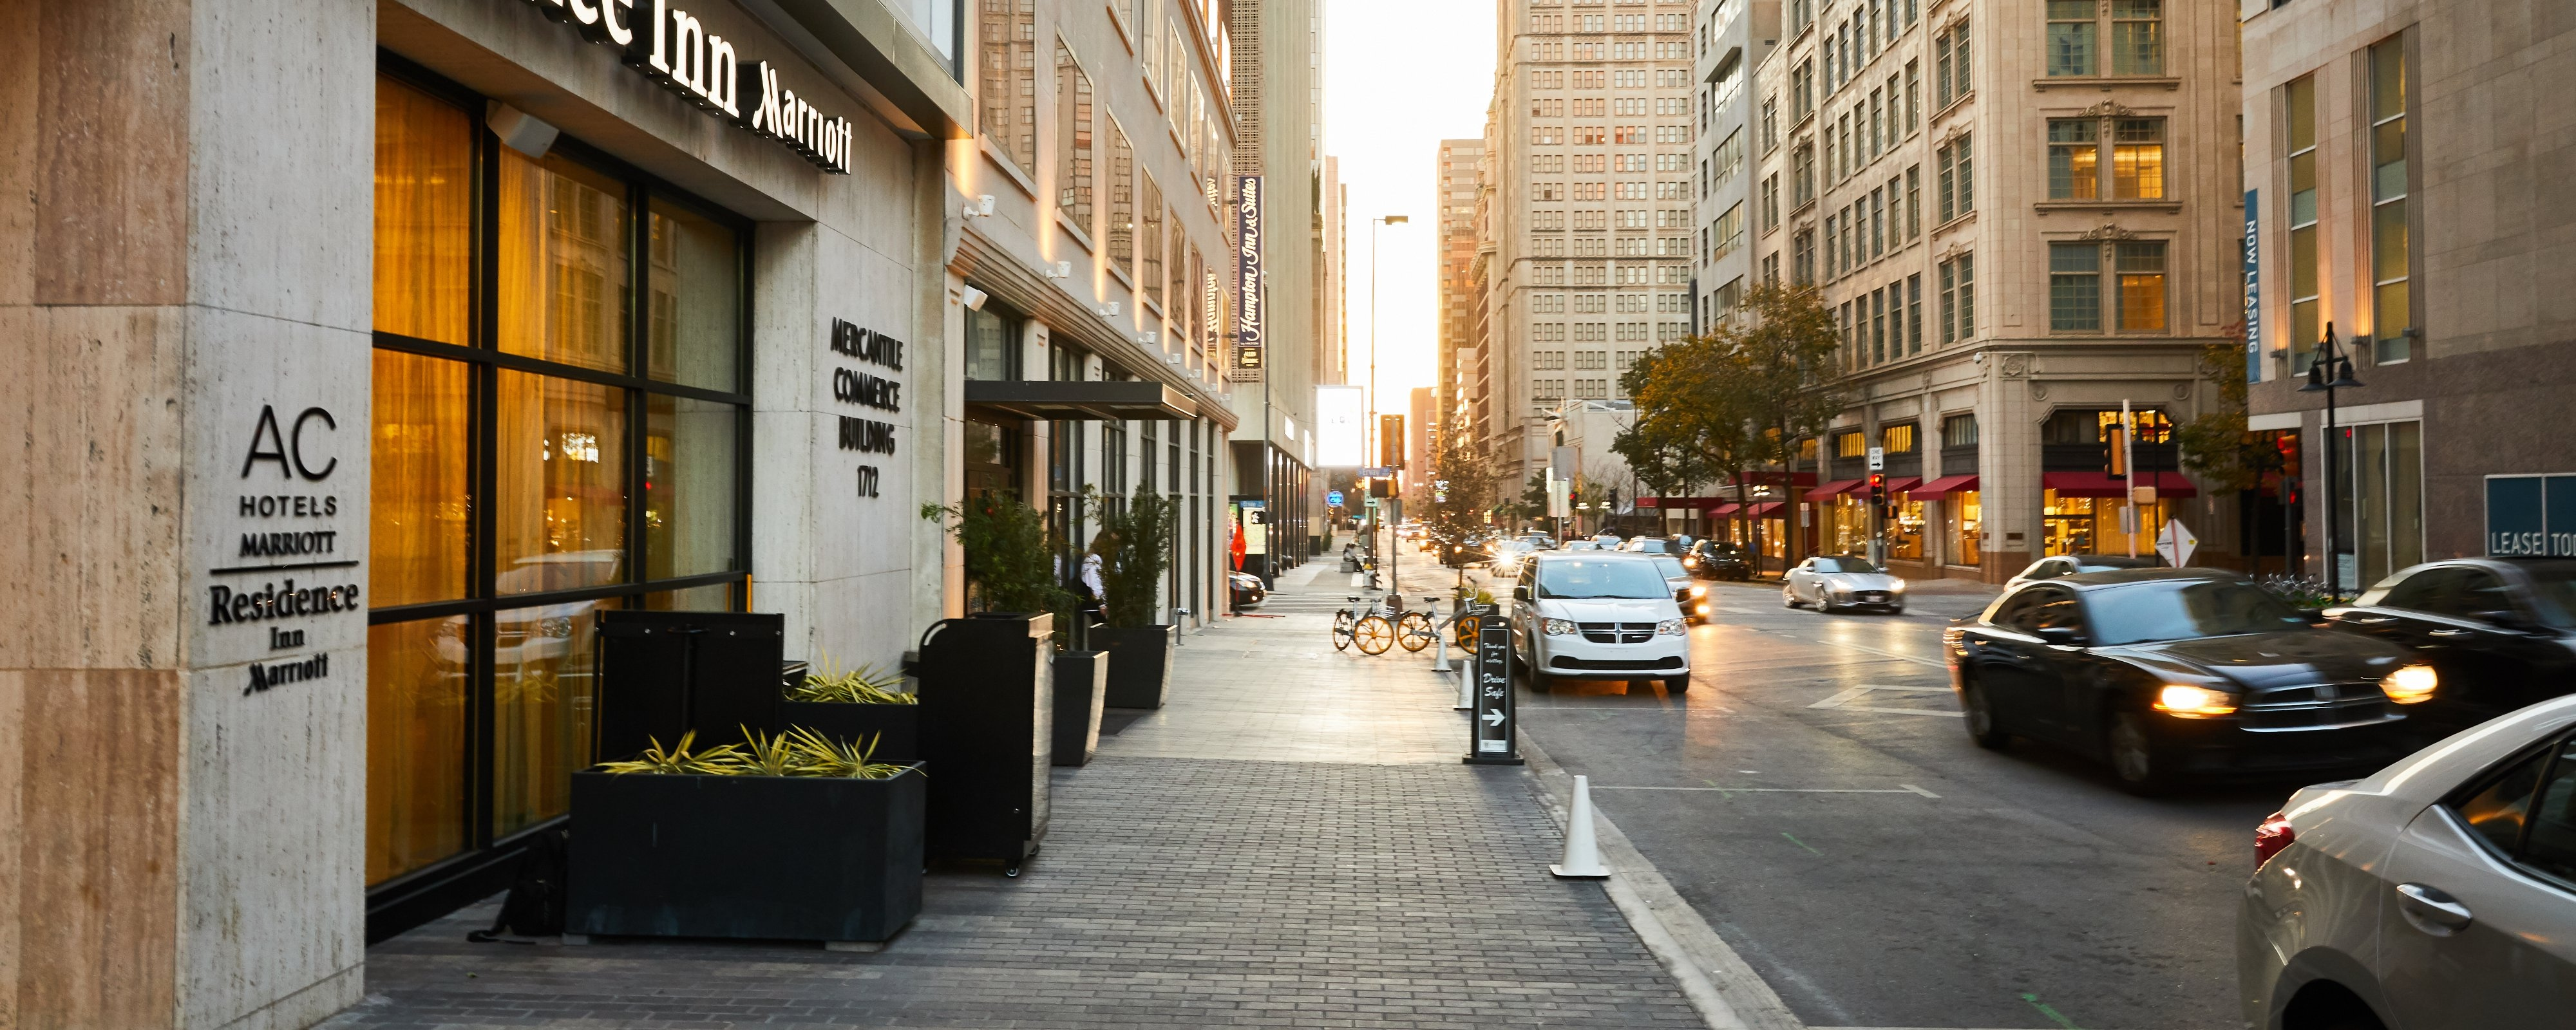 Extended-Stay Hotels in Downtown Dallas, TX | Residence Inn Dallas ...